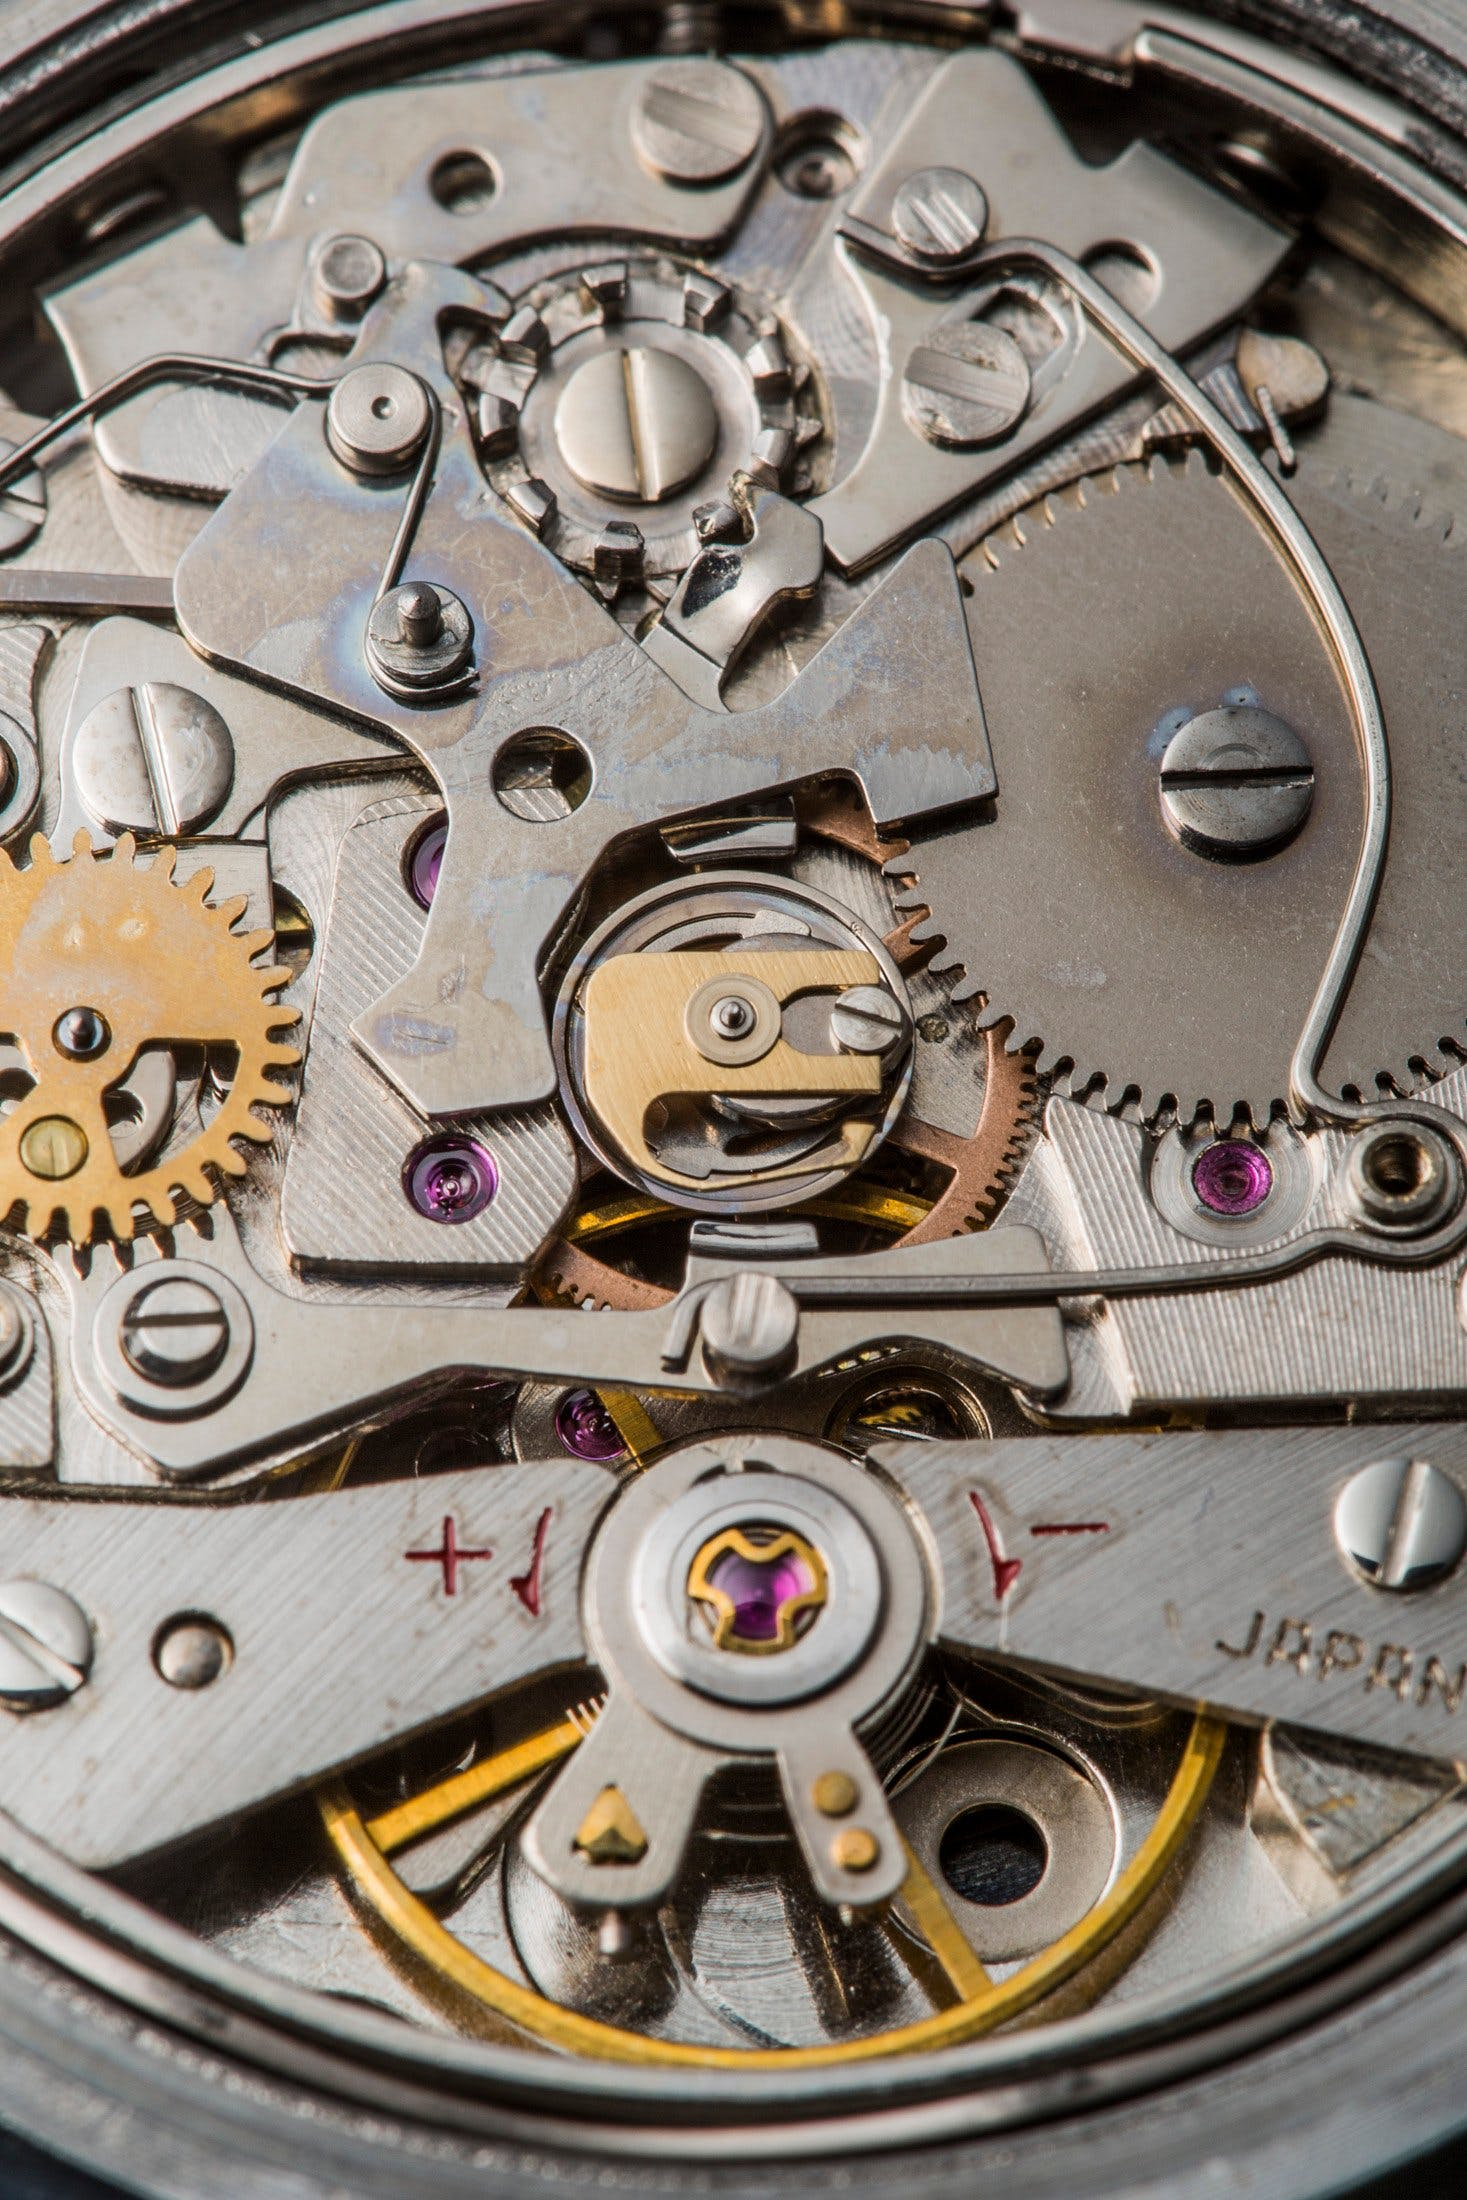 Inside the Seiko 6139: The column wheel is located near the clutch to ensure smooth functioning.